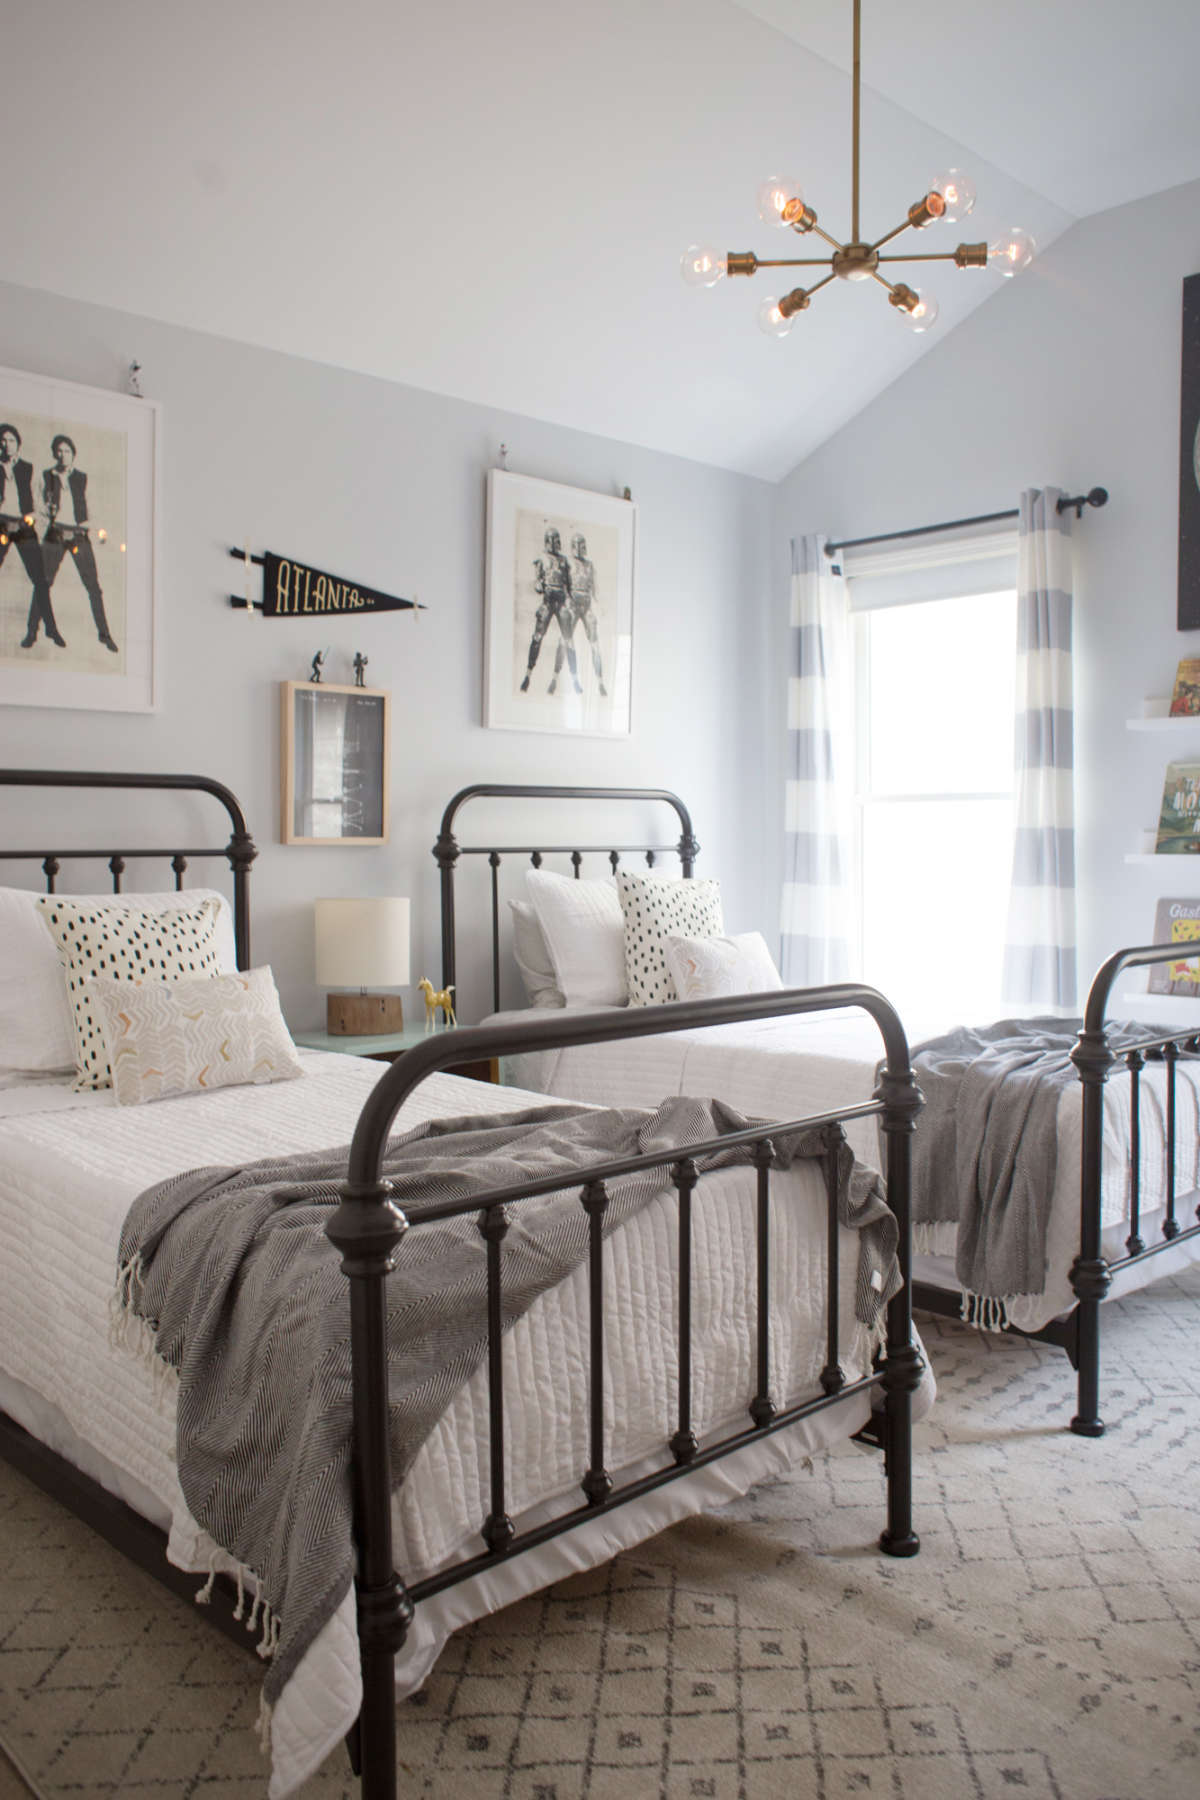 star wars ideas for a bedroom